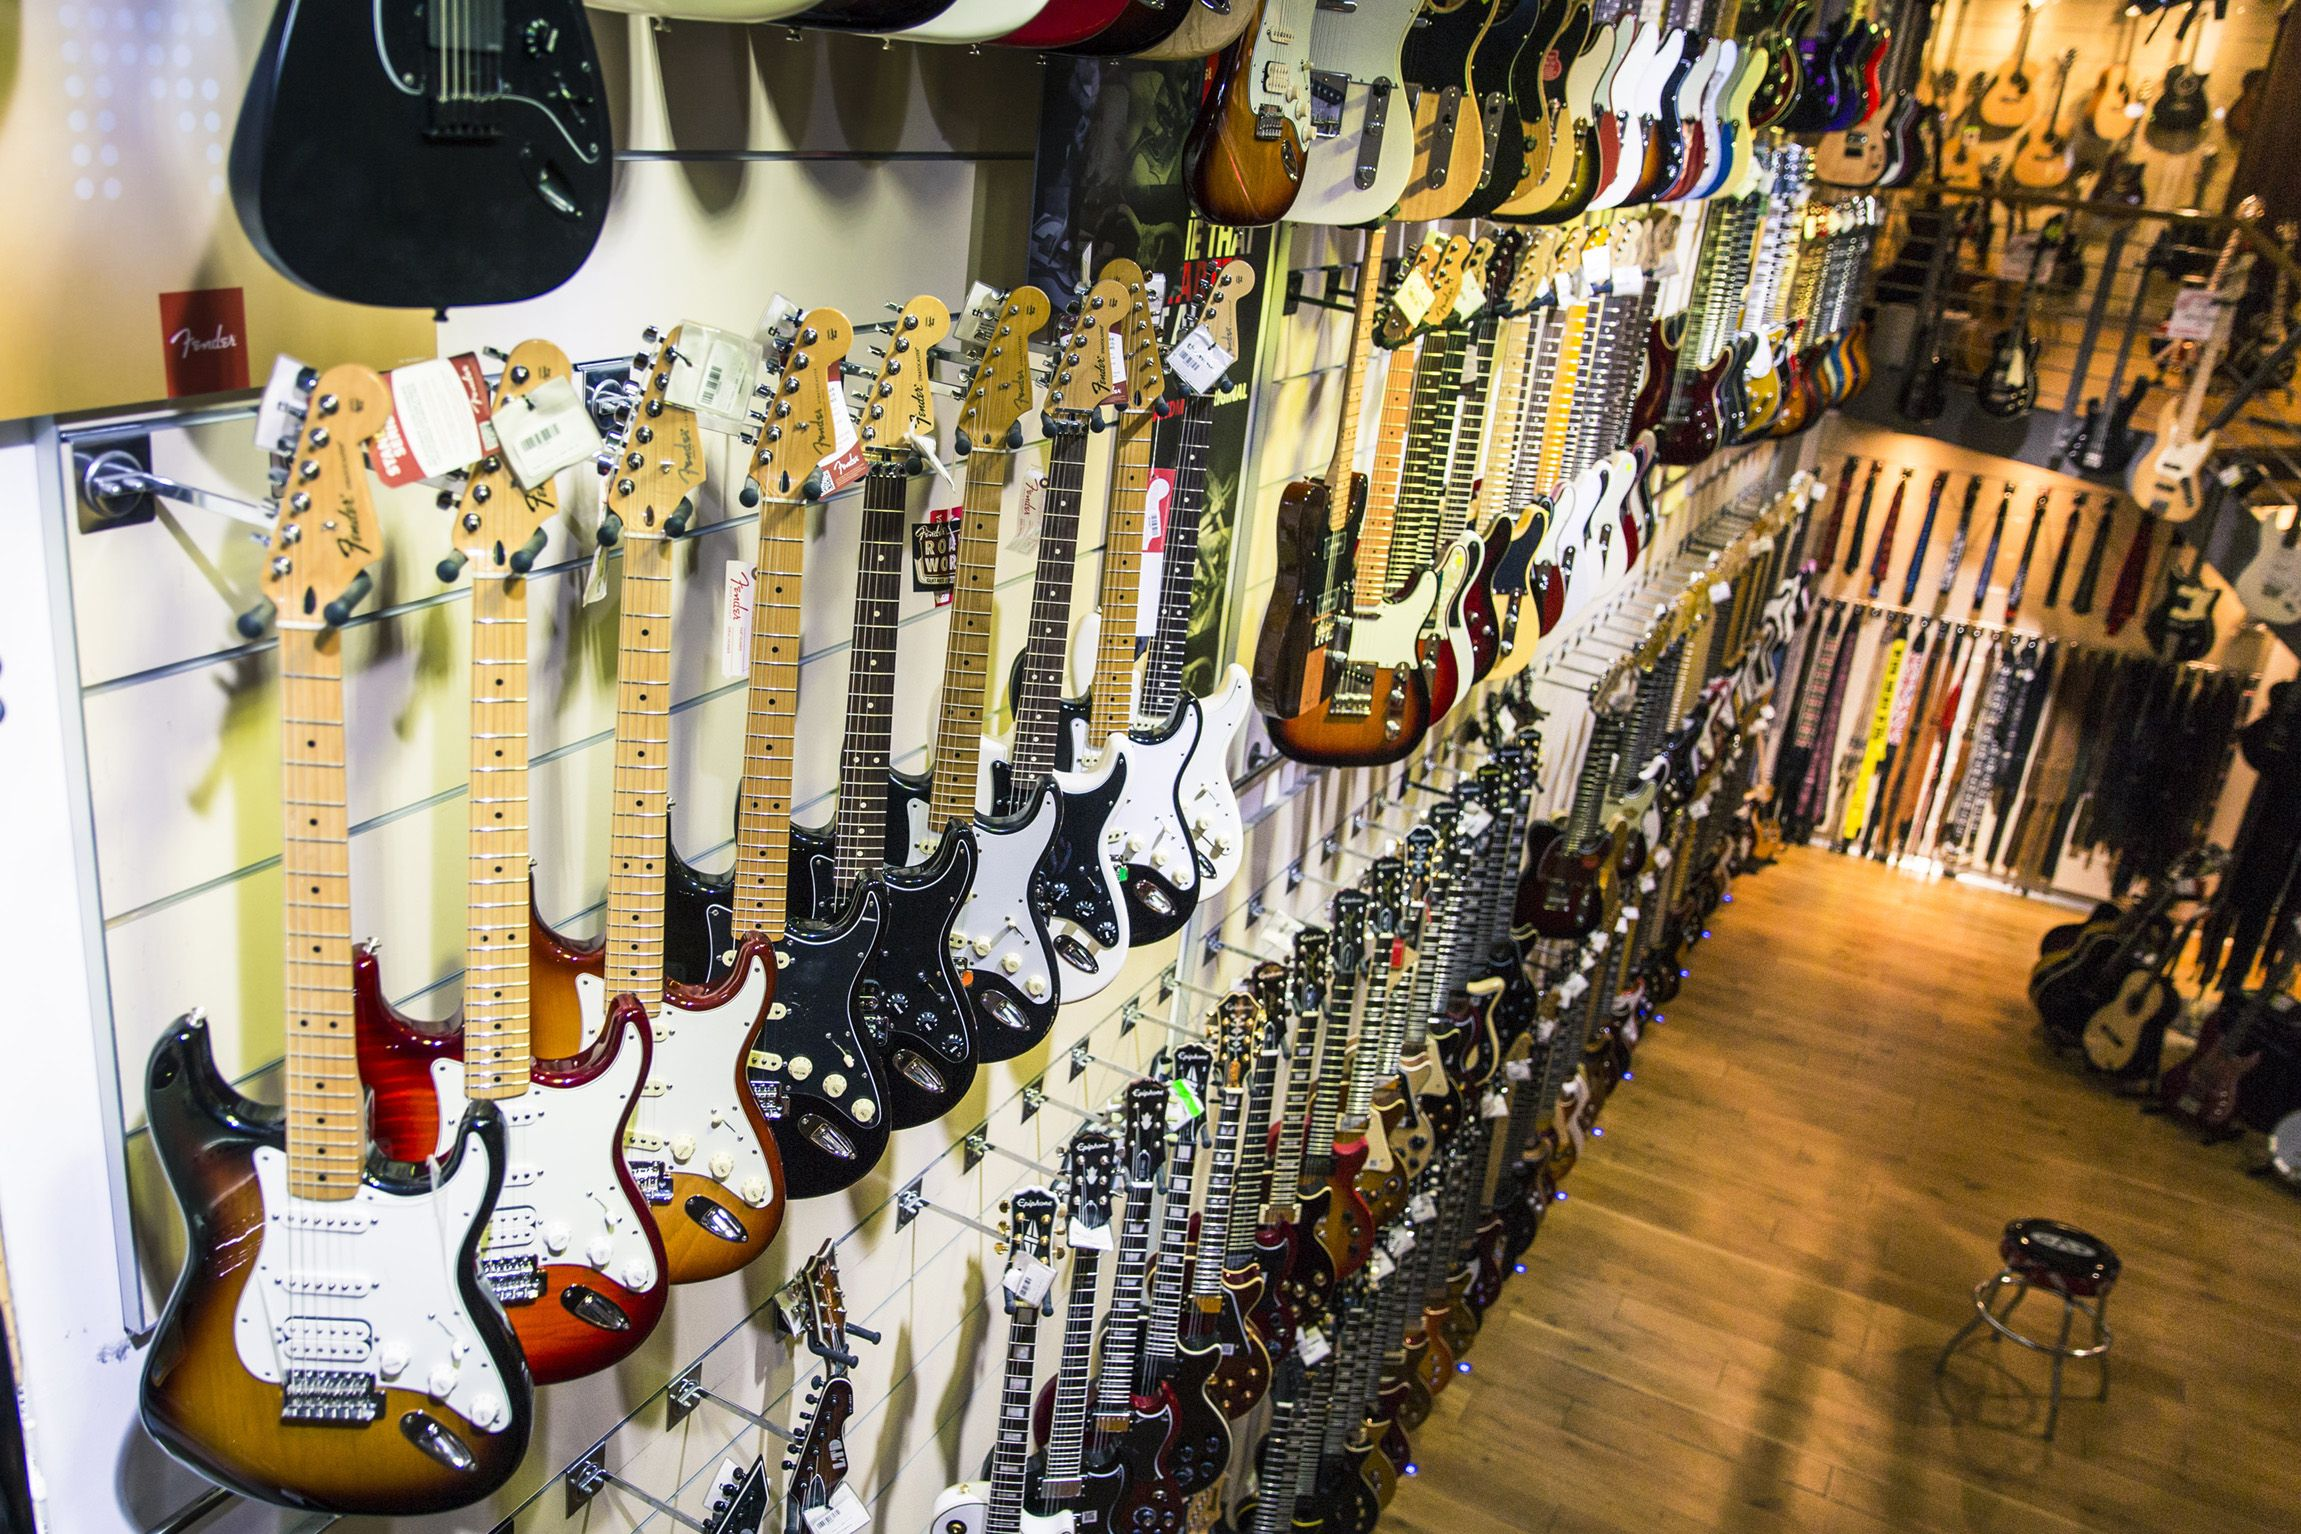 Welcome: Visit Europe's largest music store in Treppendorf